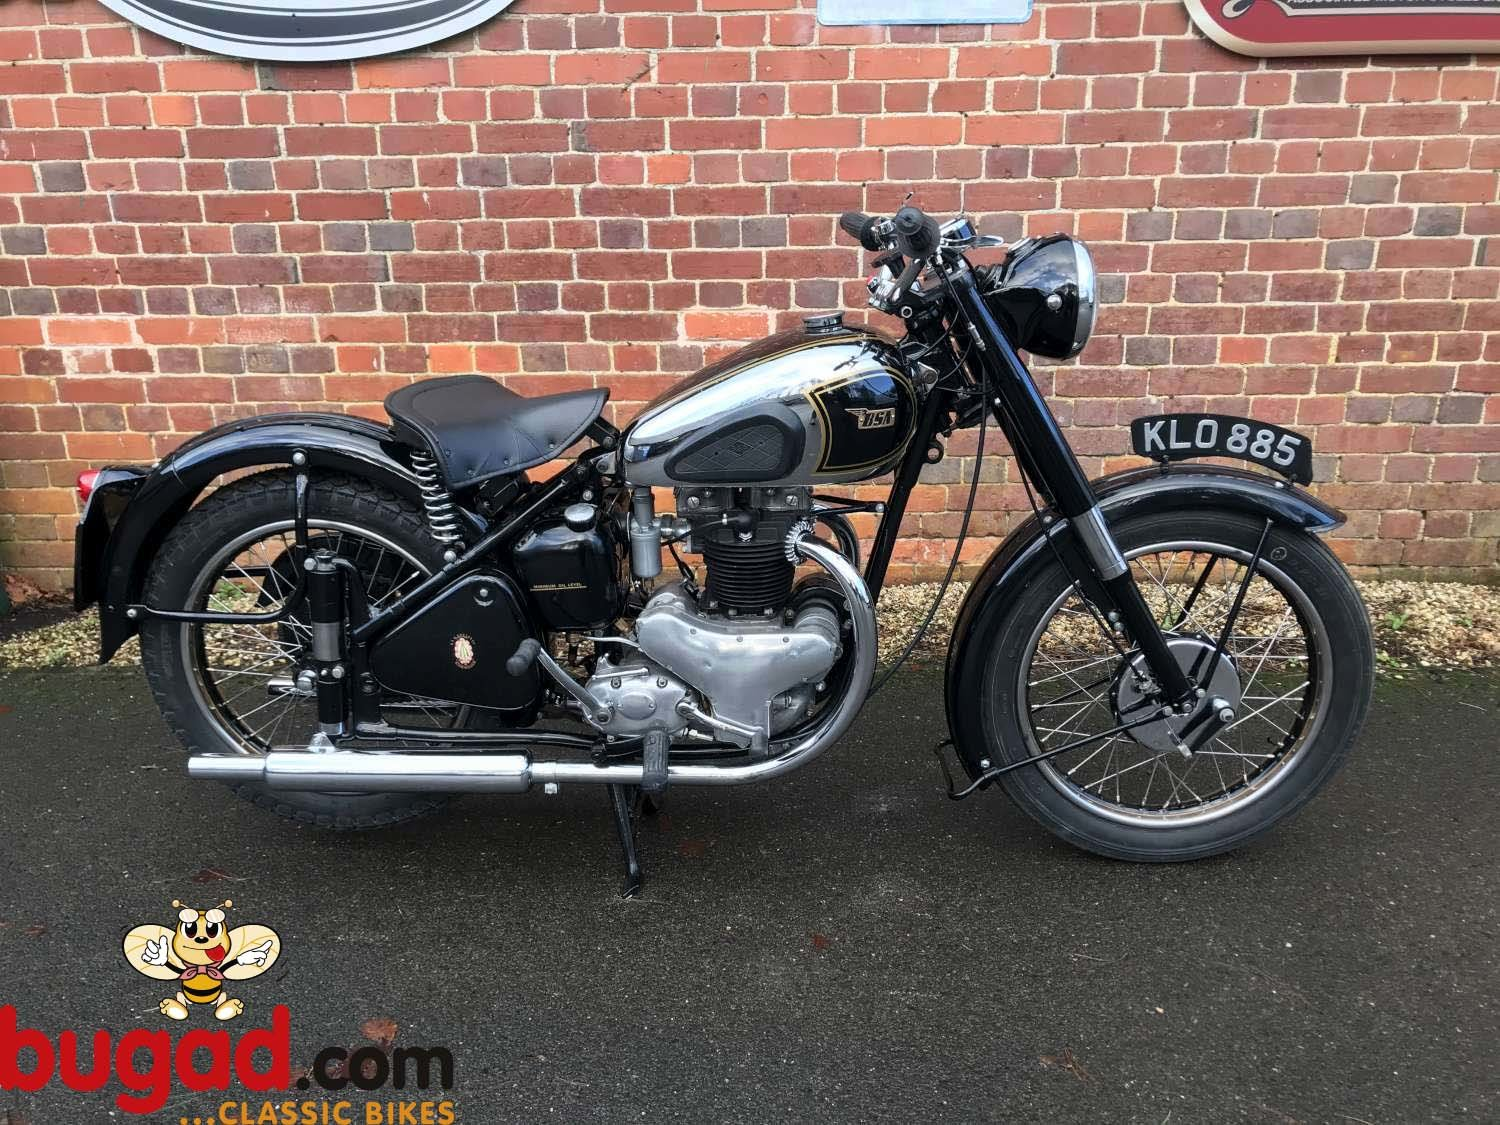 BSA A7 500cc - 1949 - Long Stroke - Plunger - Restored For Sale (picture 1 of 12)